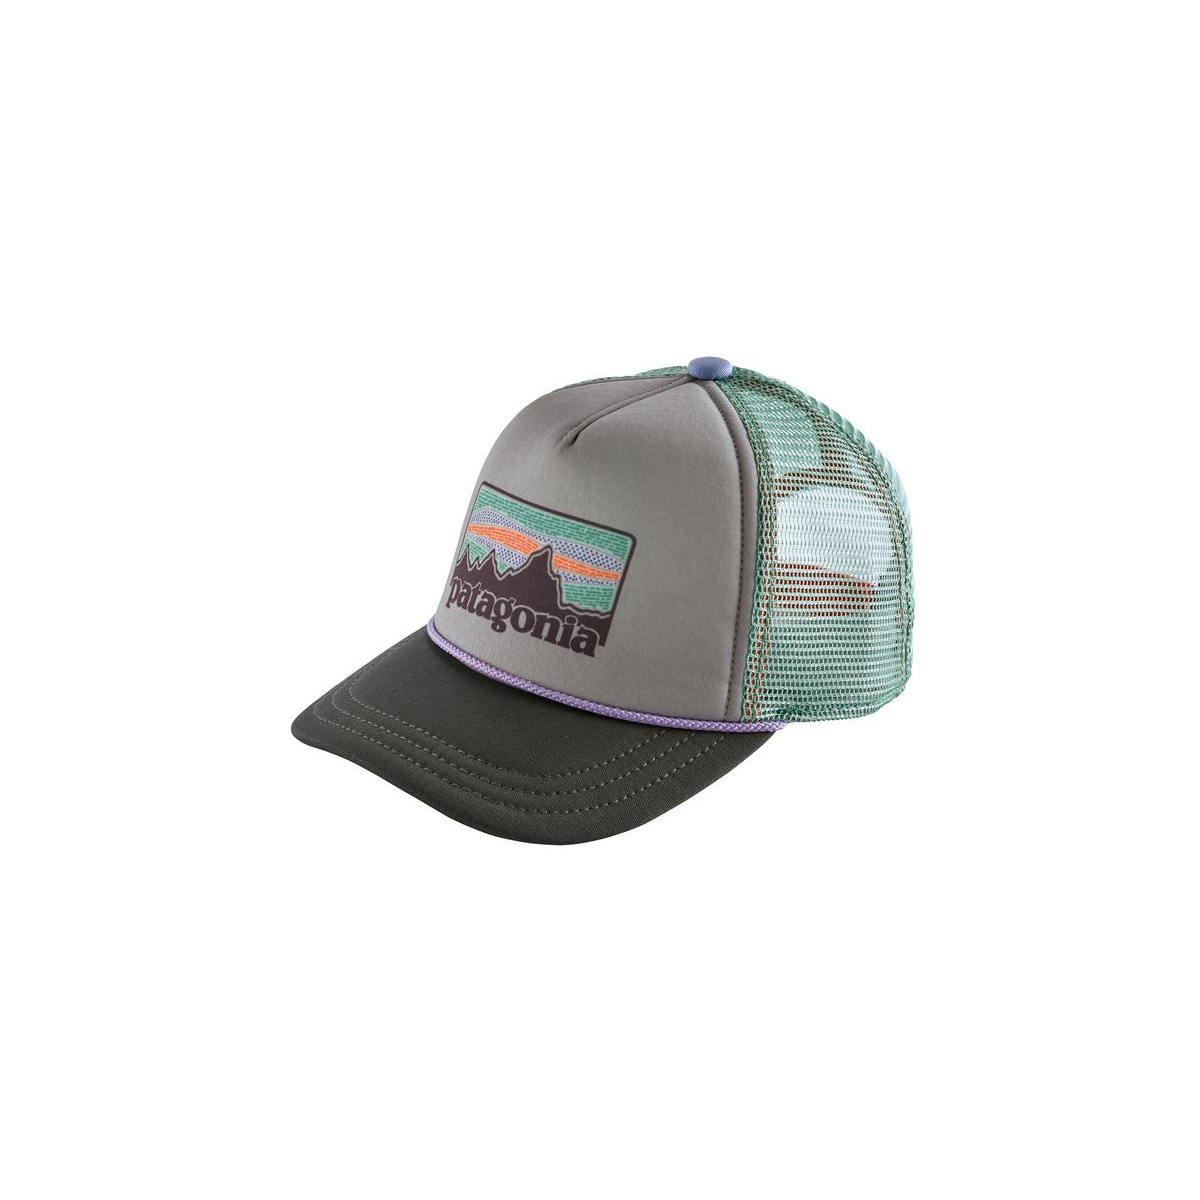 Patagonia K Interstate Hat - Gearhead Outfitters bb9e02735c2